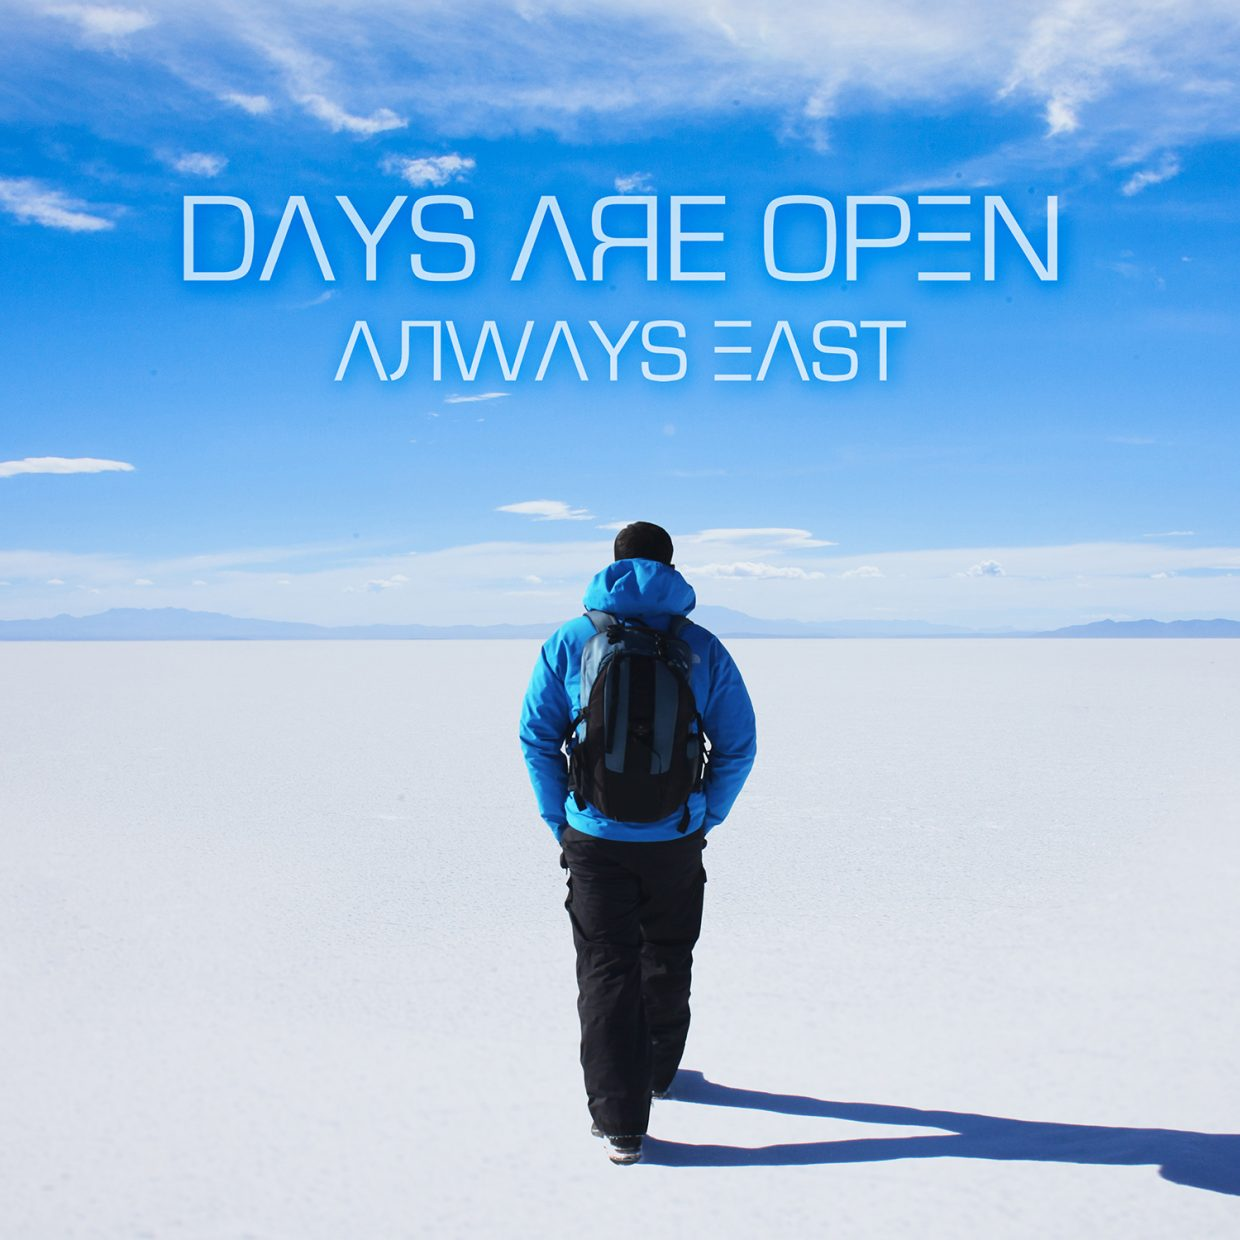 Always East - Days are open